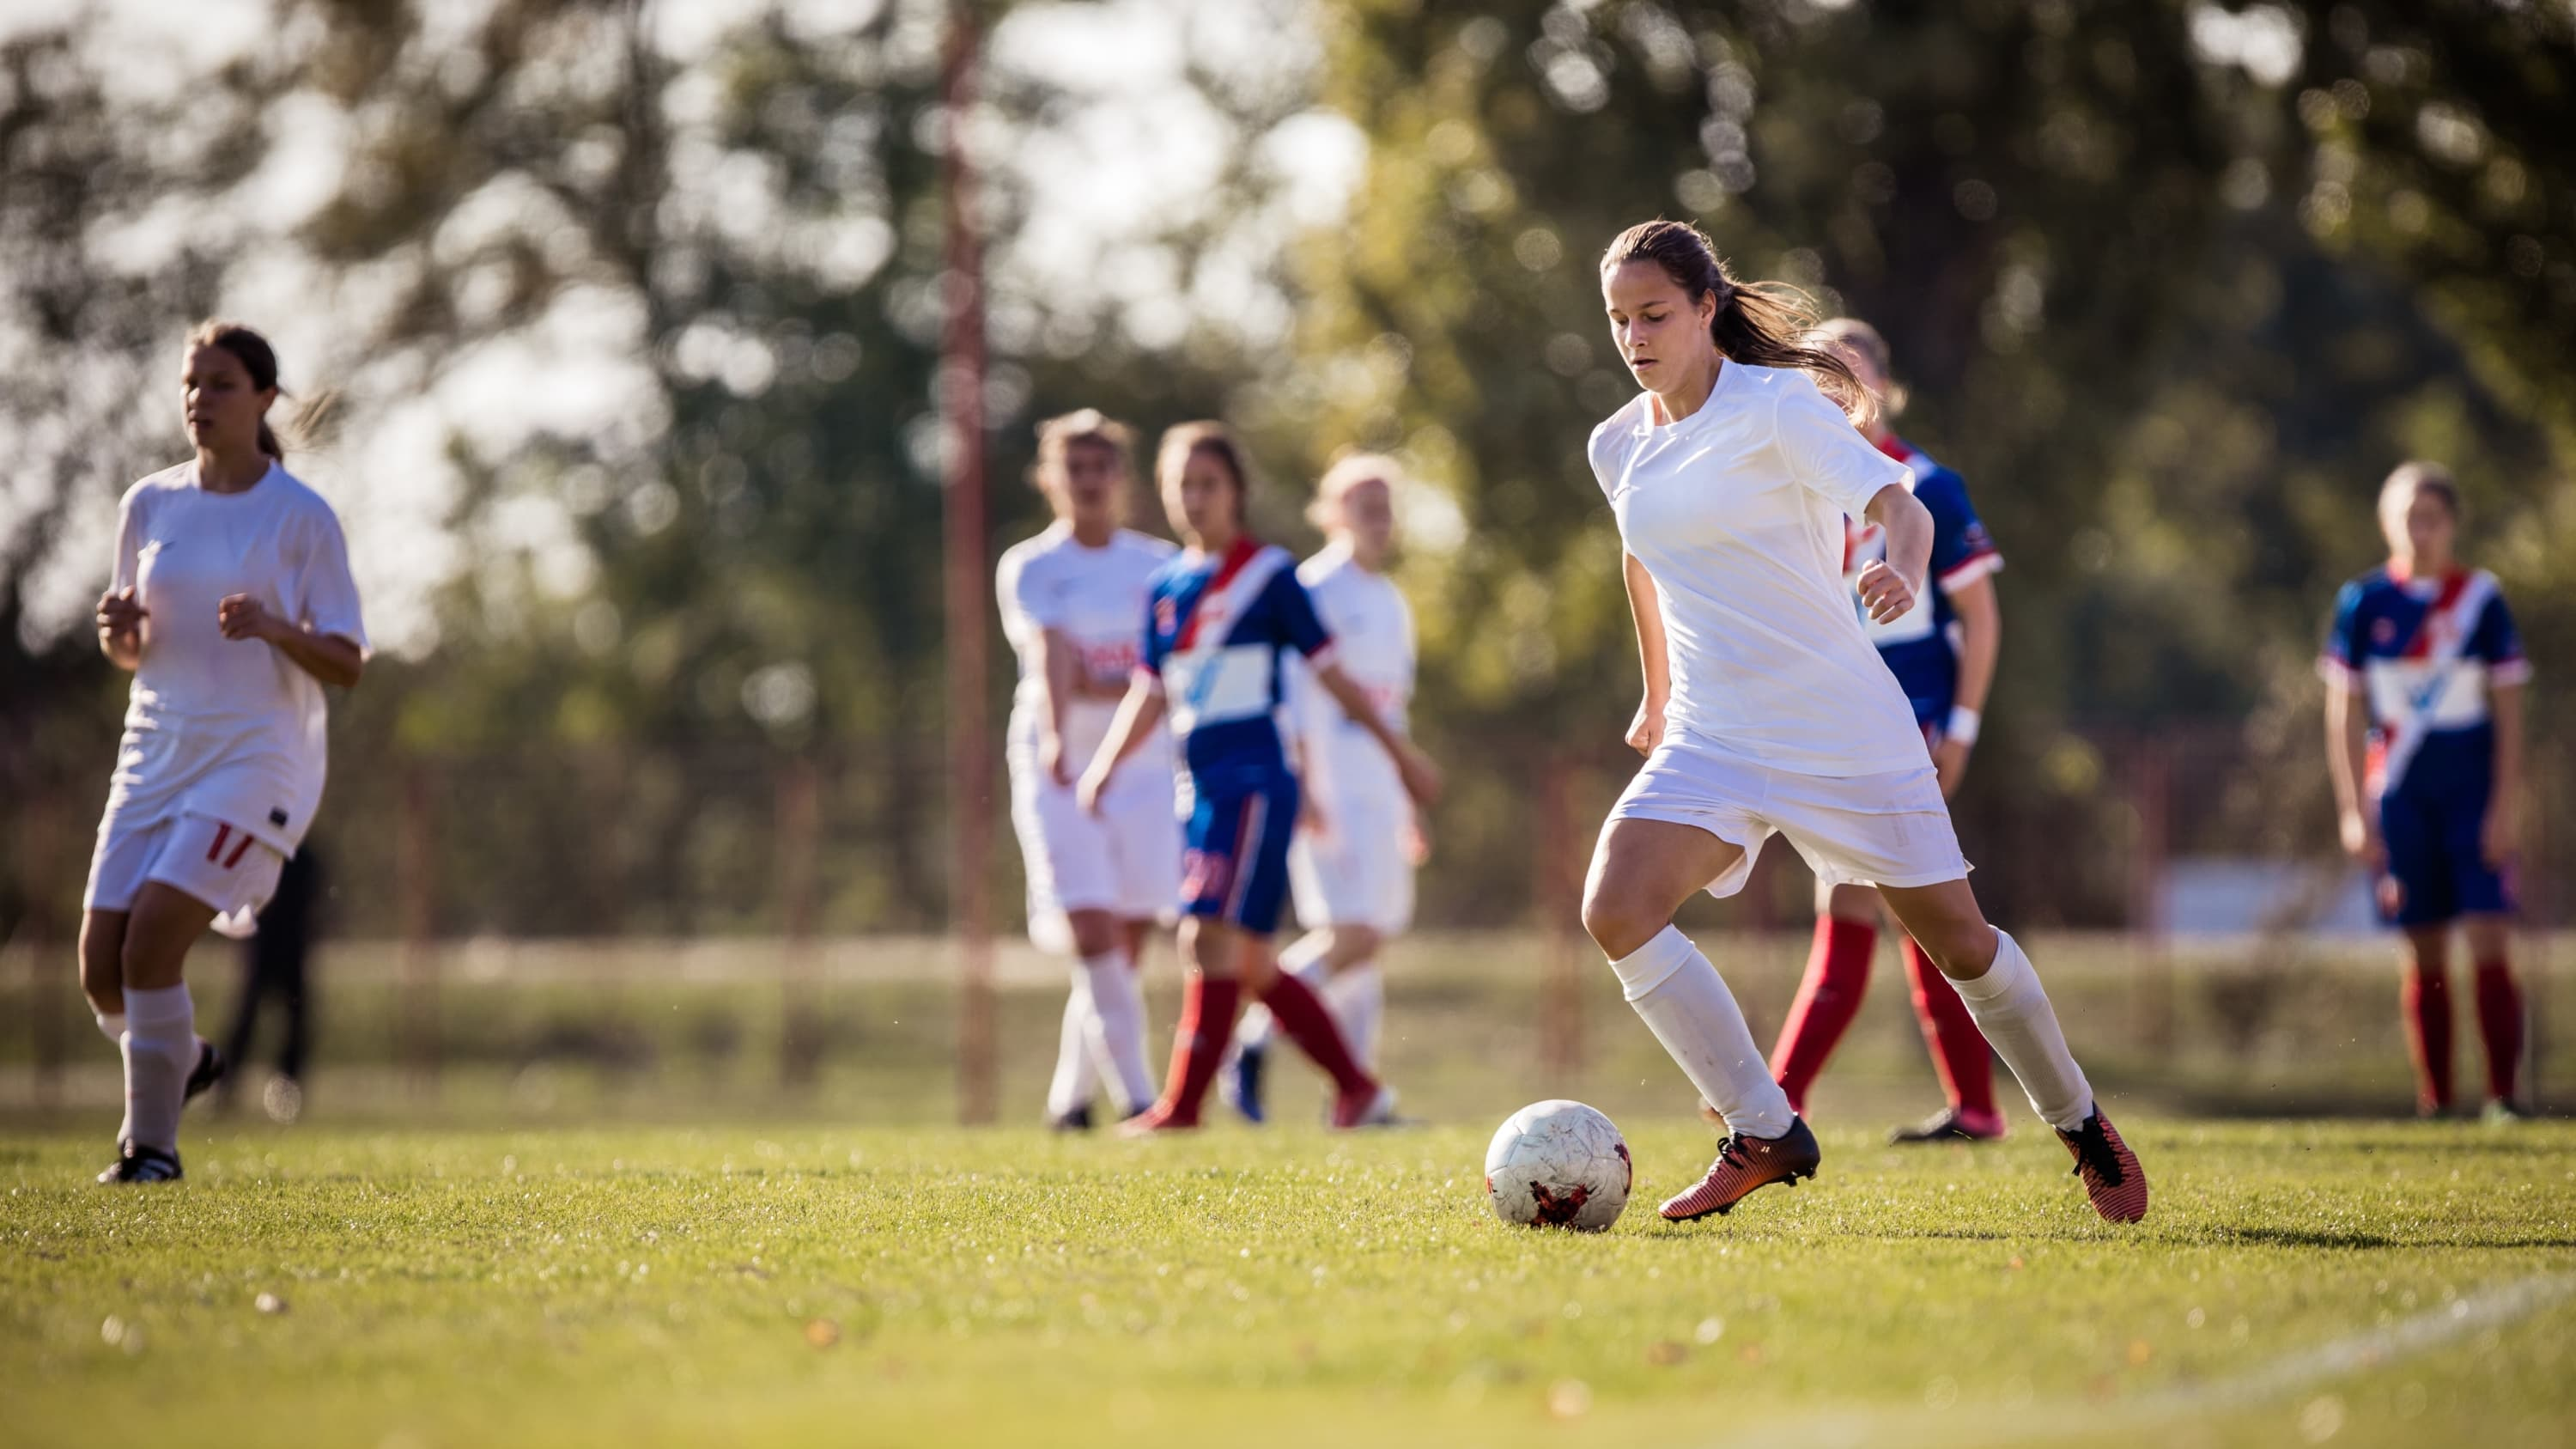 female soccer player, dribbling soccer ball, possibly before an injury to articular cartilagge